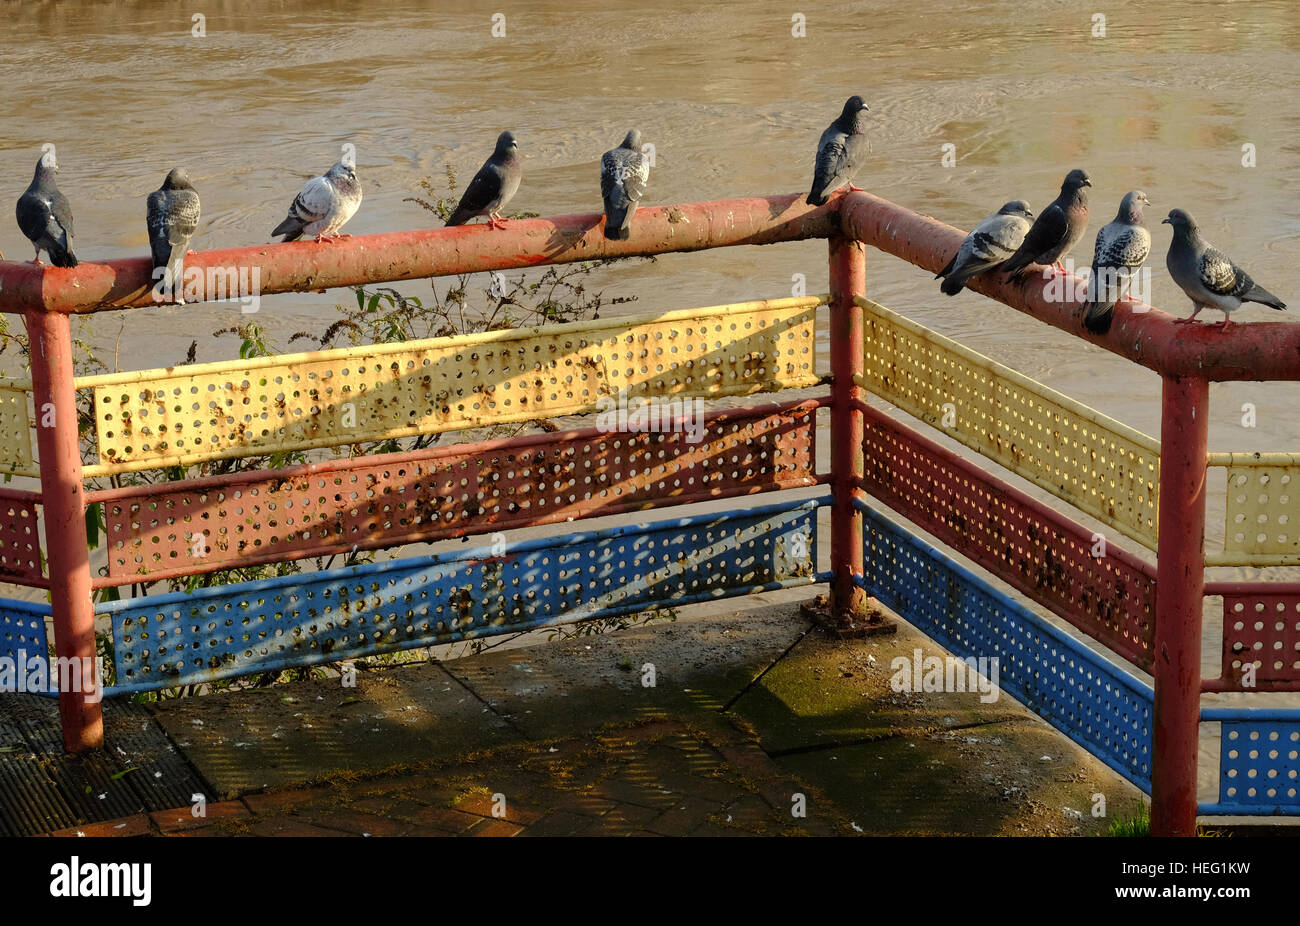 pigeons perched on a handrail - Stock Image